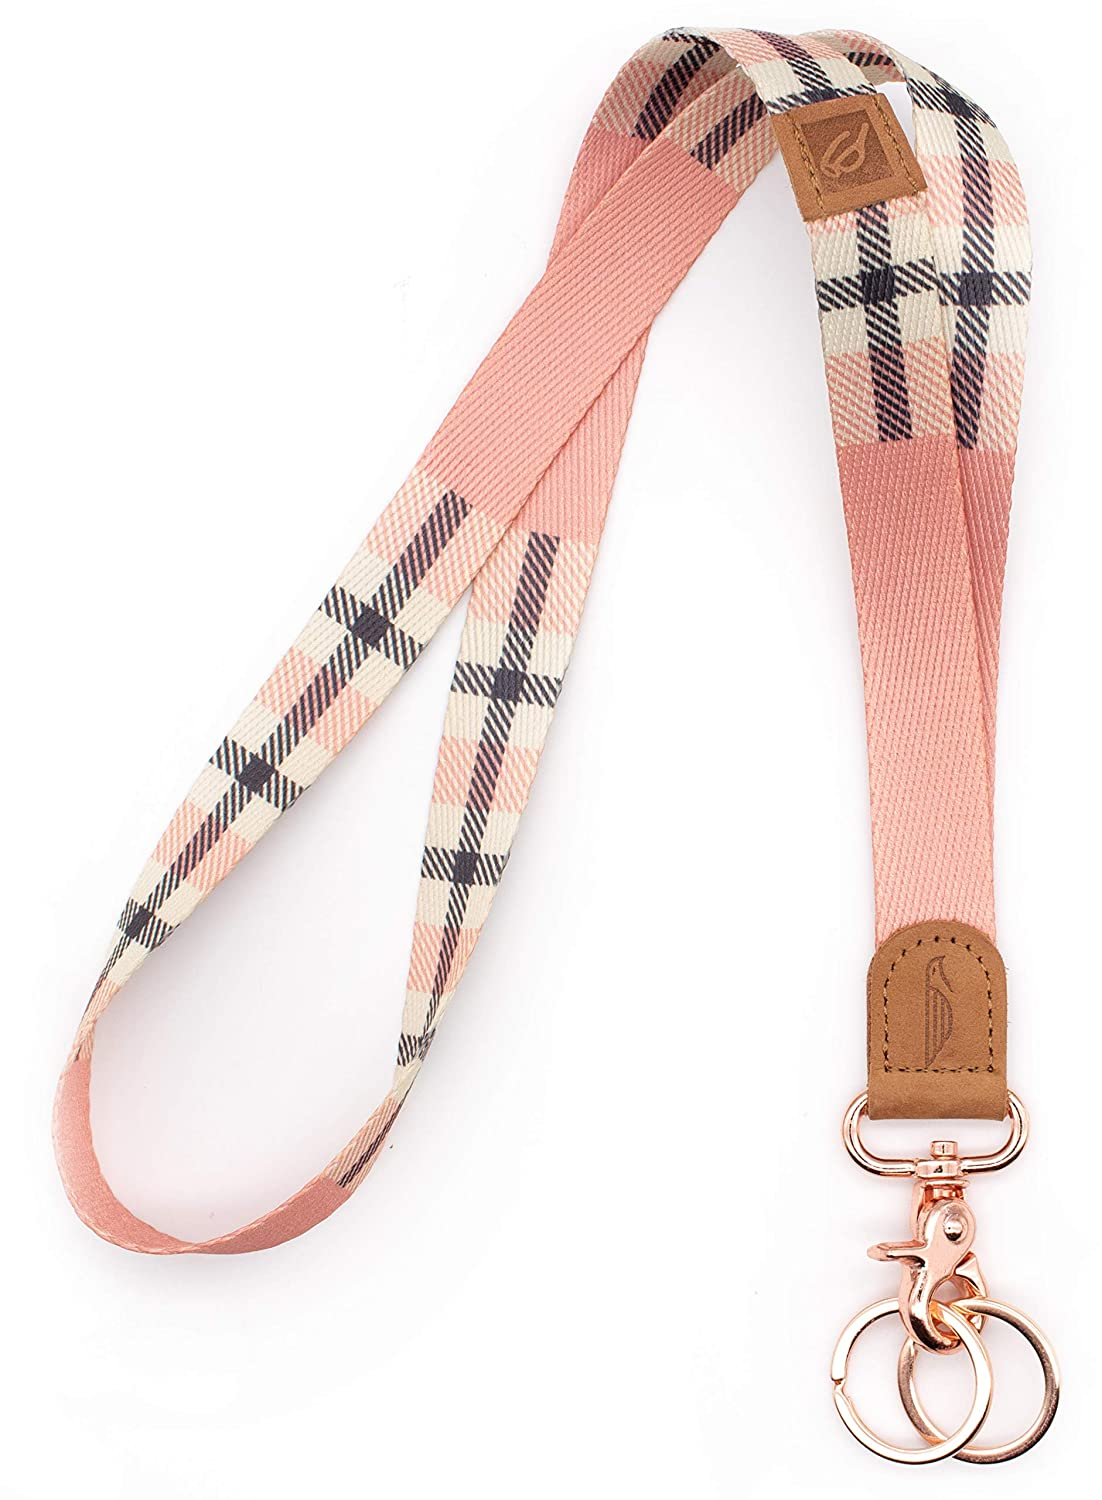 POCKT Neck Lanyard Keychain Holder for Men and Women - Cool Lanyards for  Keys, Wallet and ID Badge with 2 Key Ring | Pink Plaid: Amazon.in: Office  Products